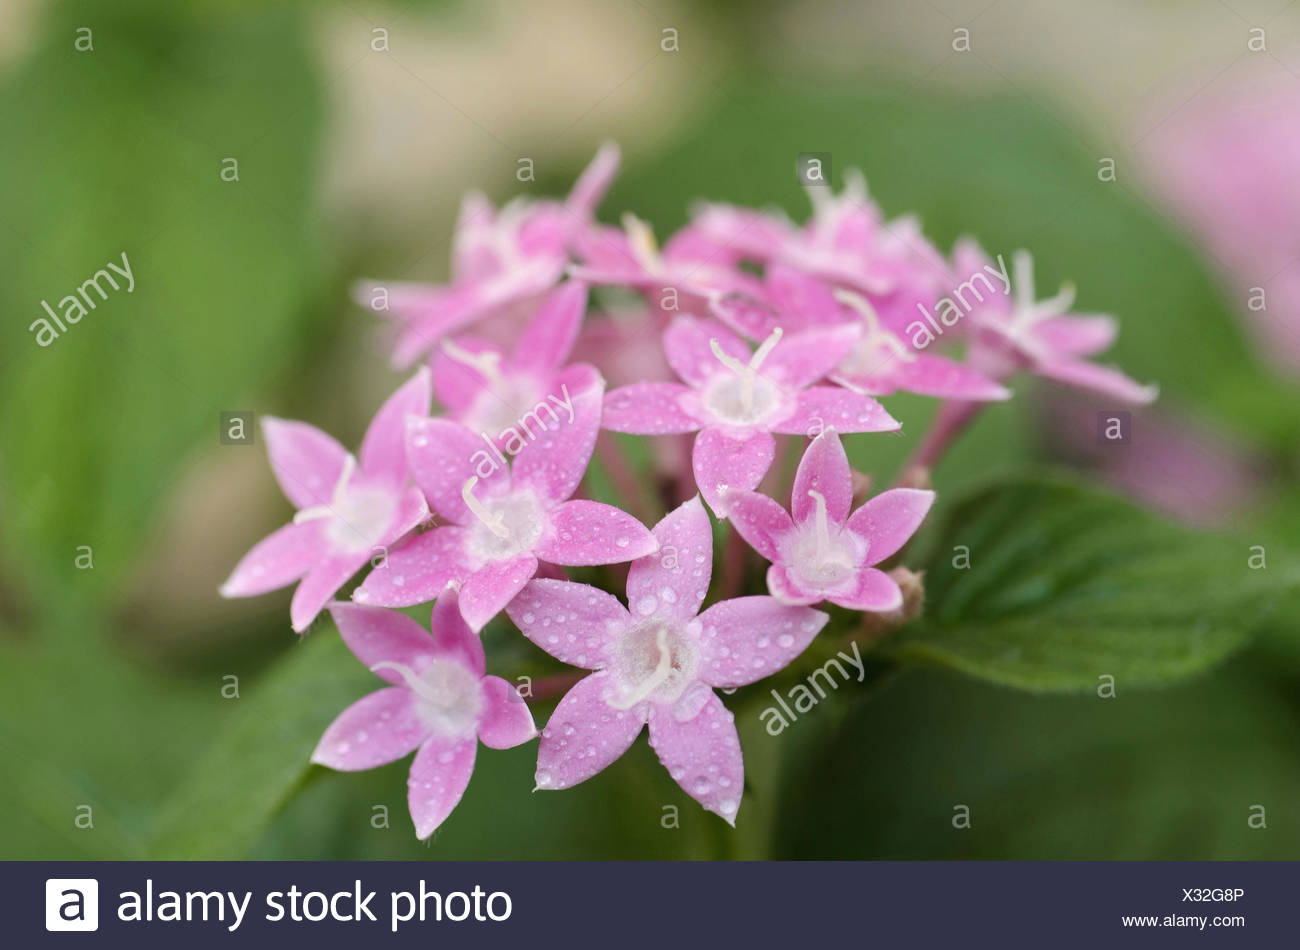 A Bunch Of Small Pink And White Flowers Pune Maharashtra India